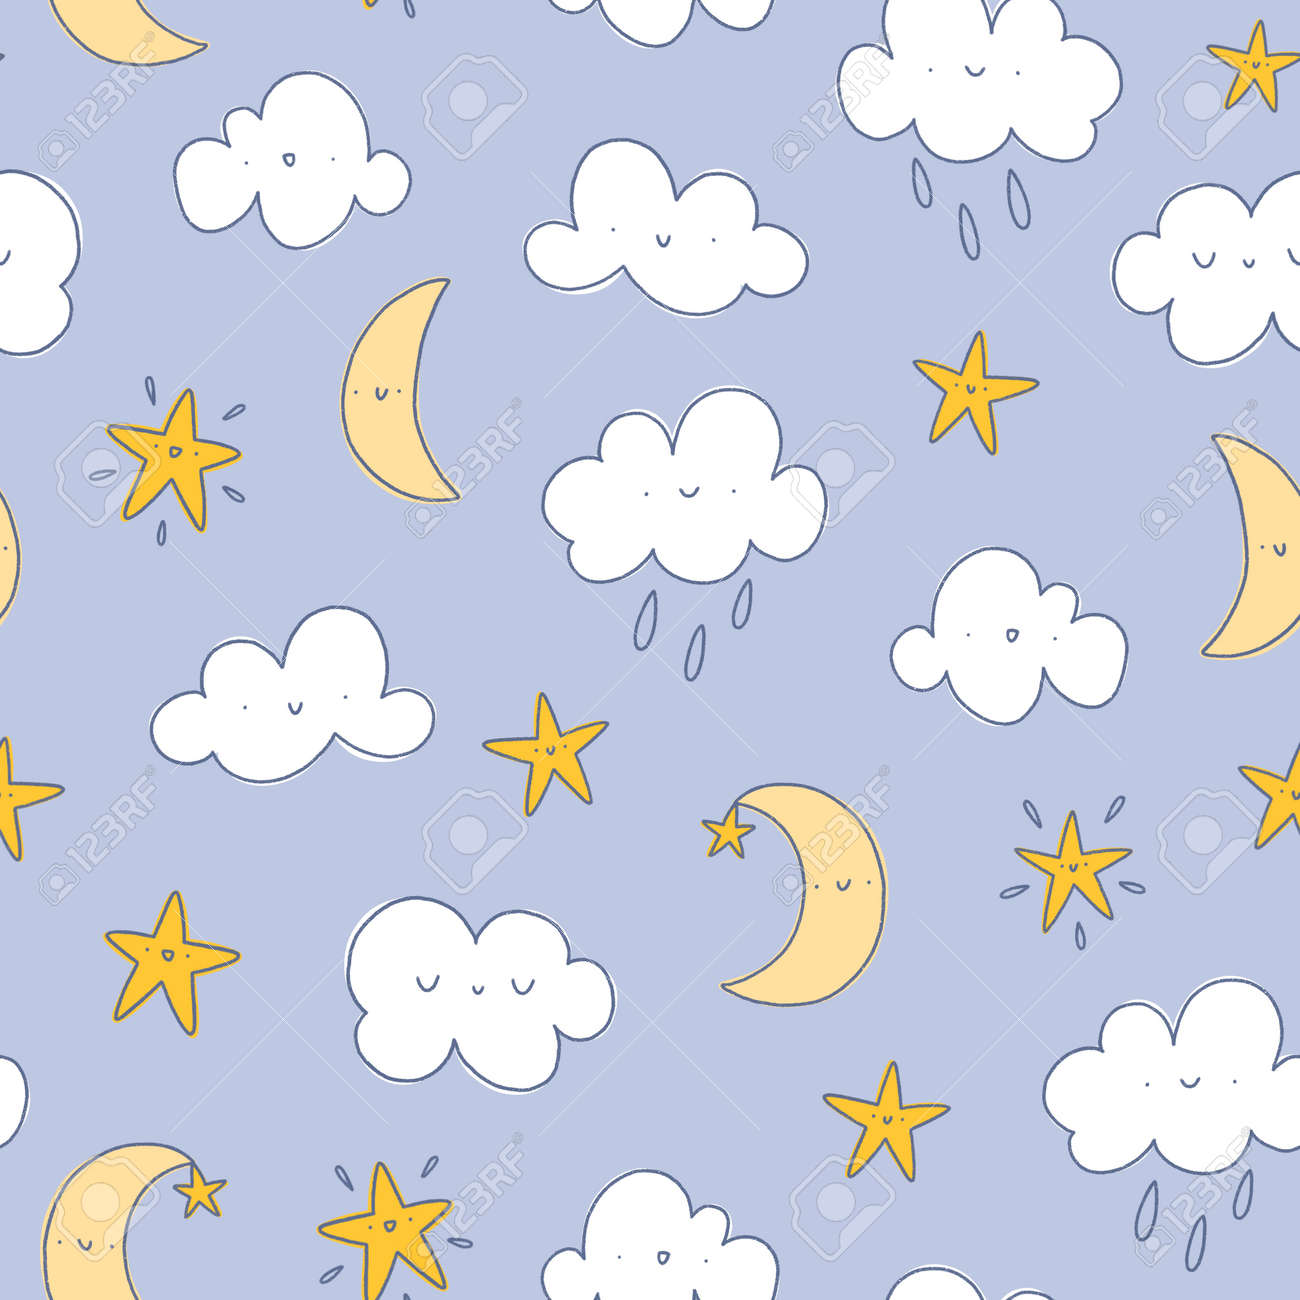 Happy cartoon clouds with raindrops, moon and stars, seamless pattern illustration, nursery background - 162389486